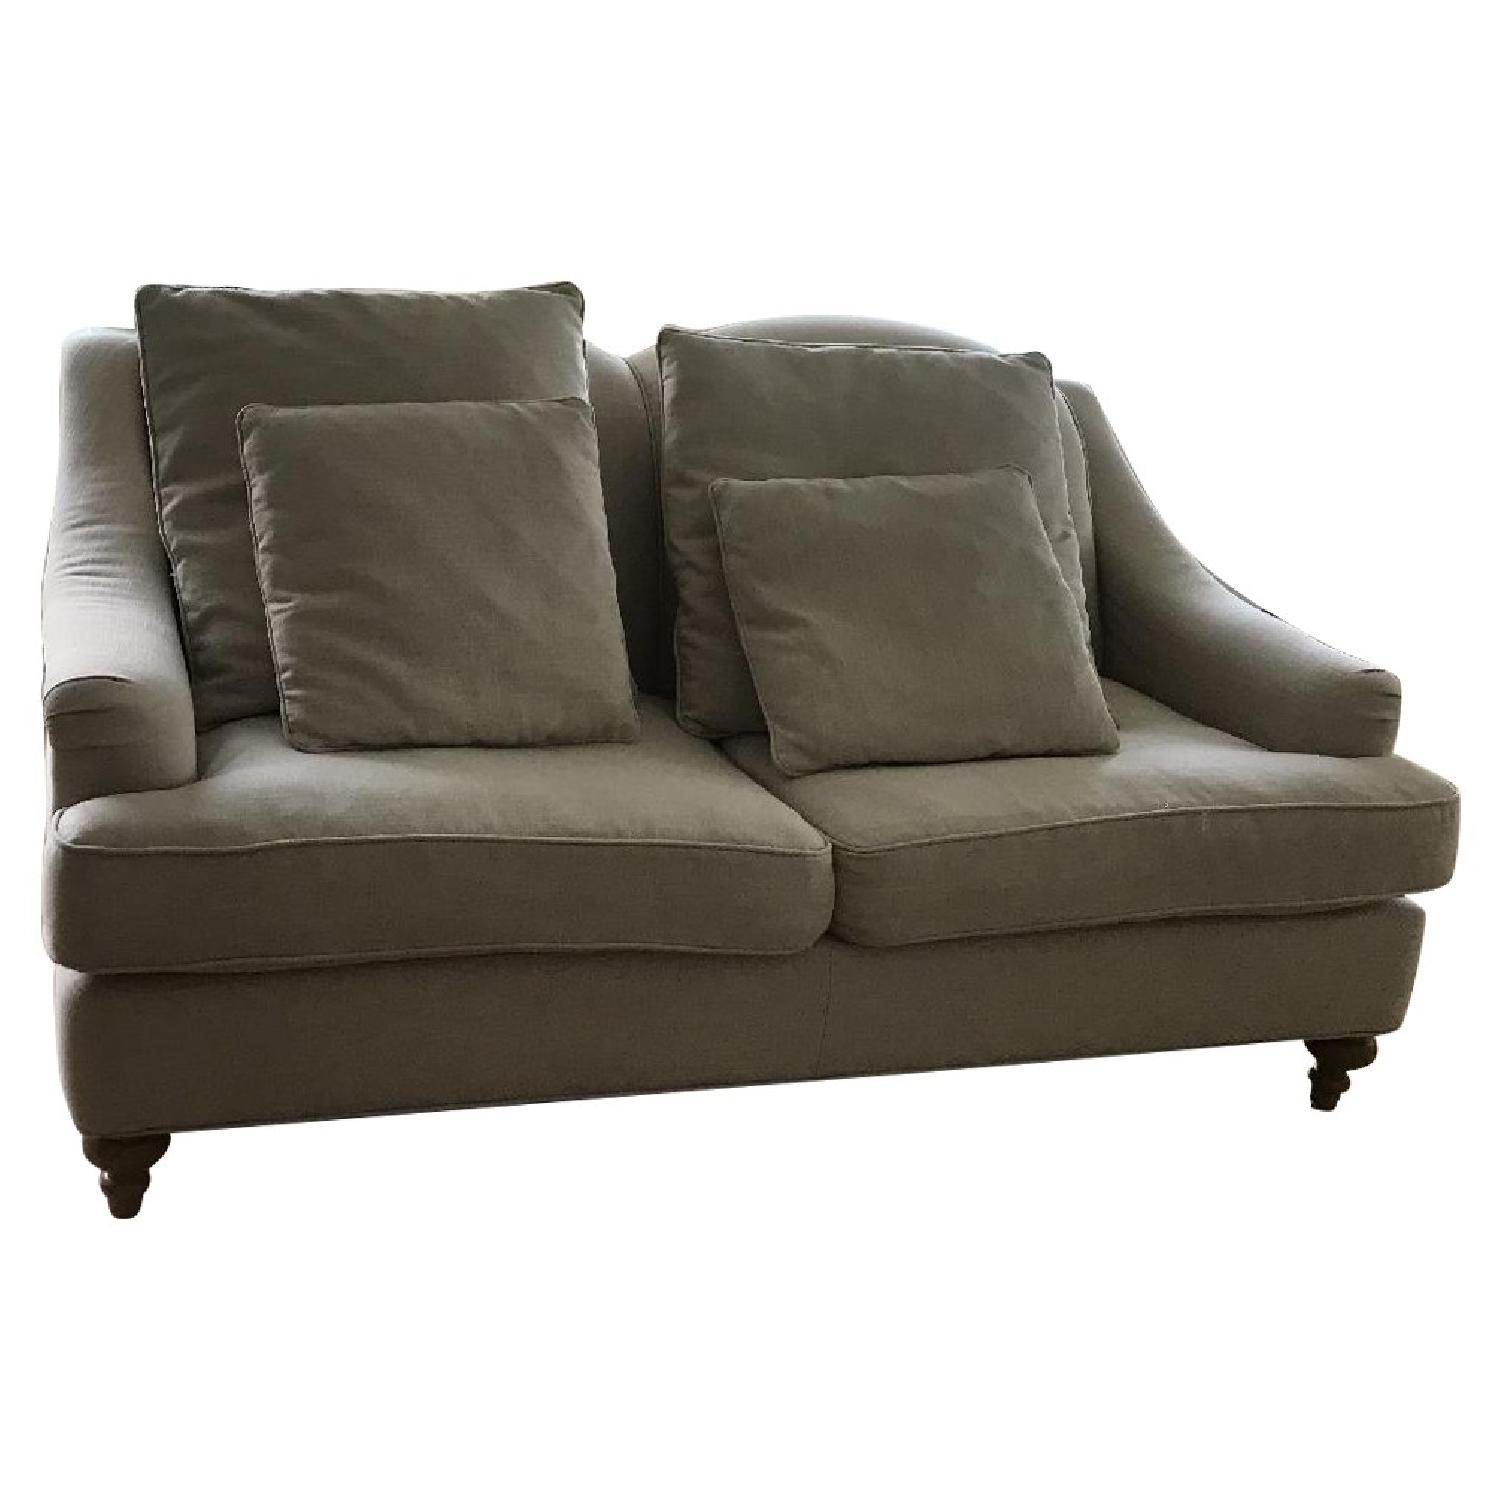 Magnolia Home by Joanna Gaines Loveseat